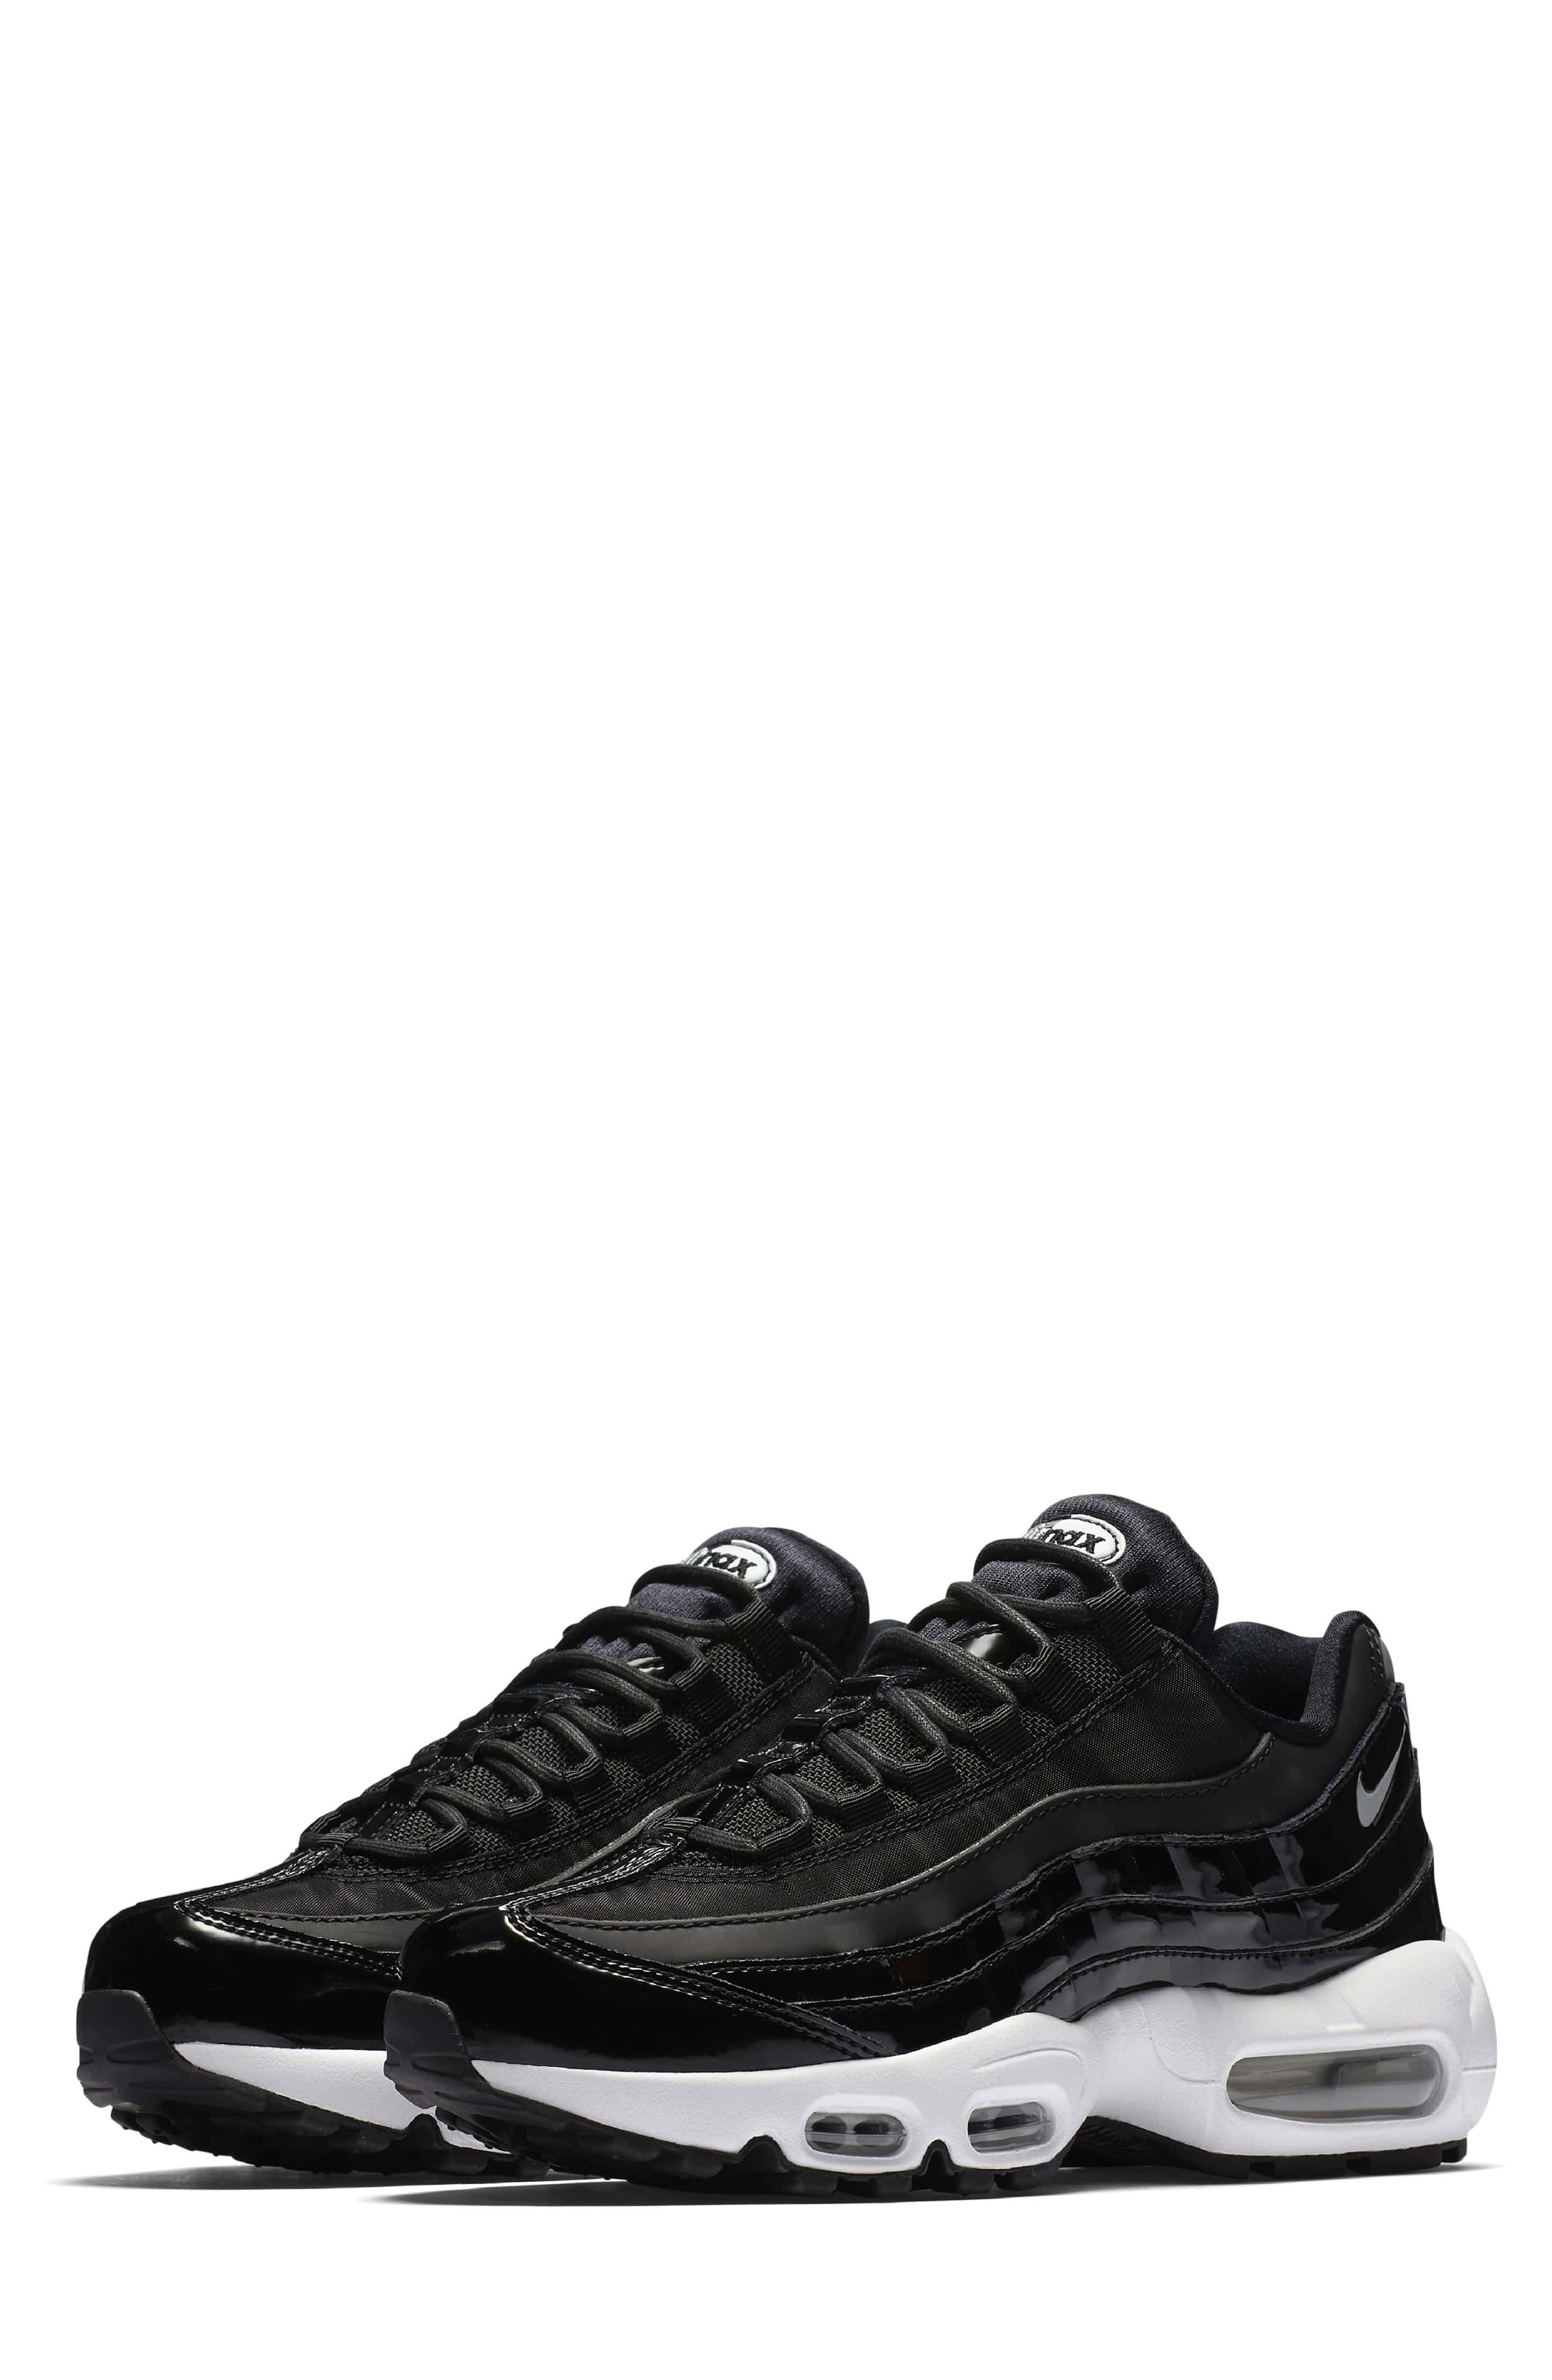 Alternate Image 1 Selected - Nike Air Max 95 Special Edition Running Shoe (Women)